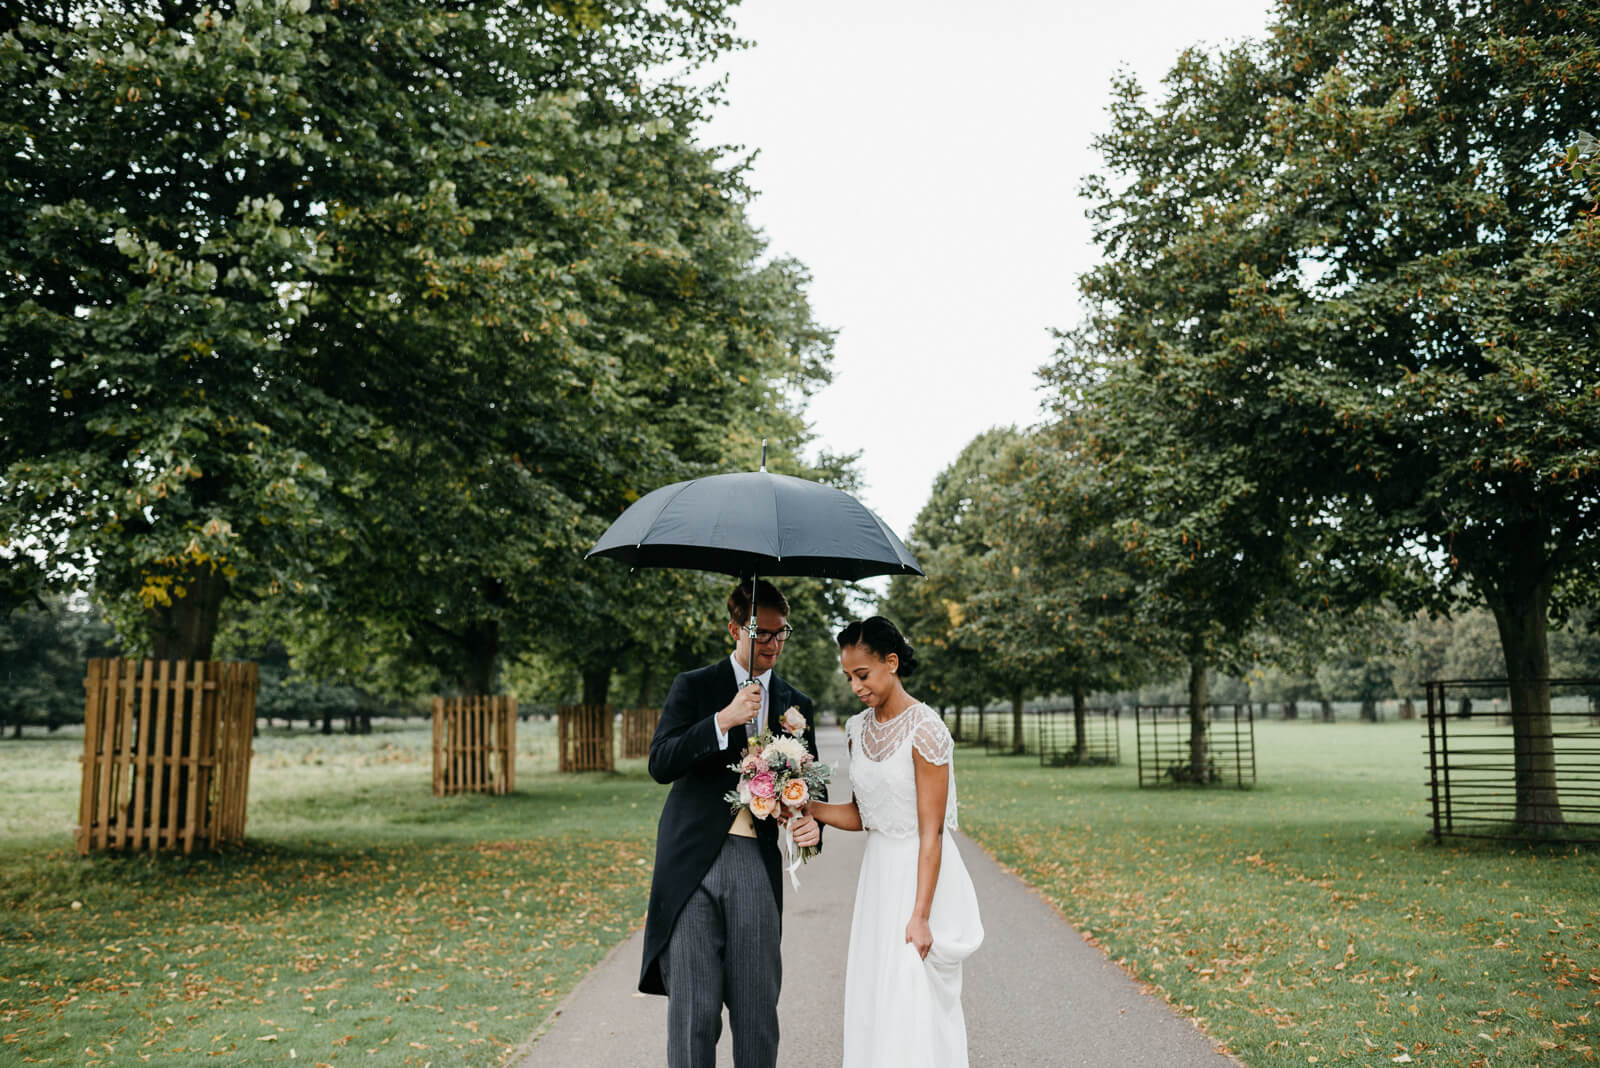 bride and groom shelter from passing rain shower under umbrella in Bushy Park